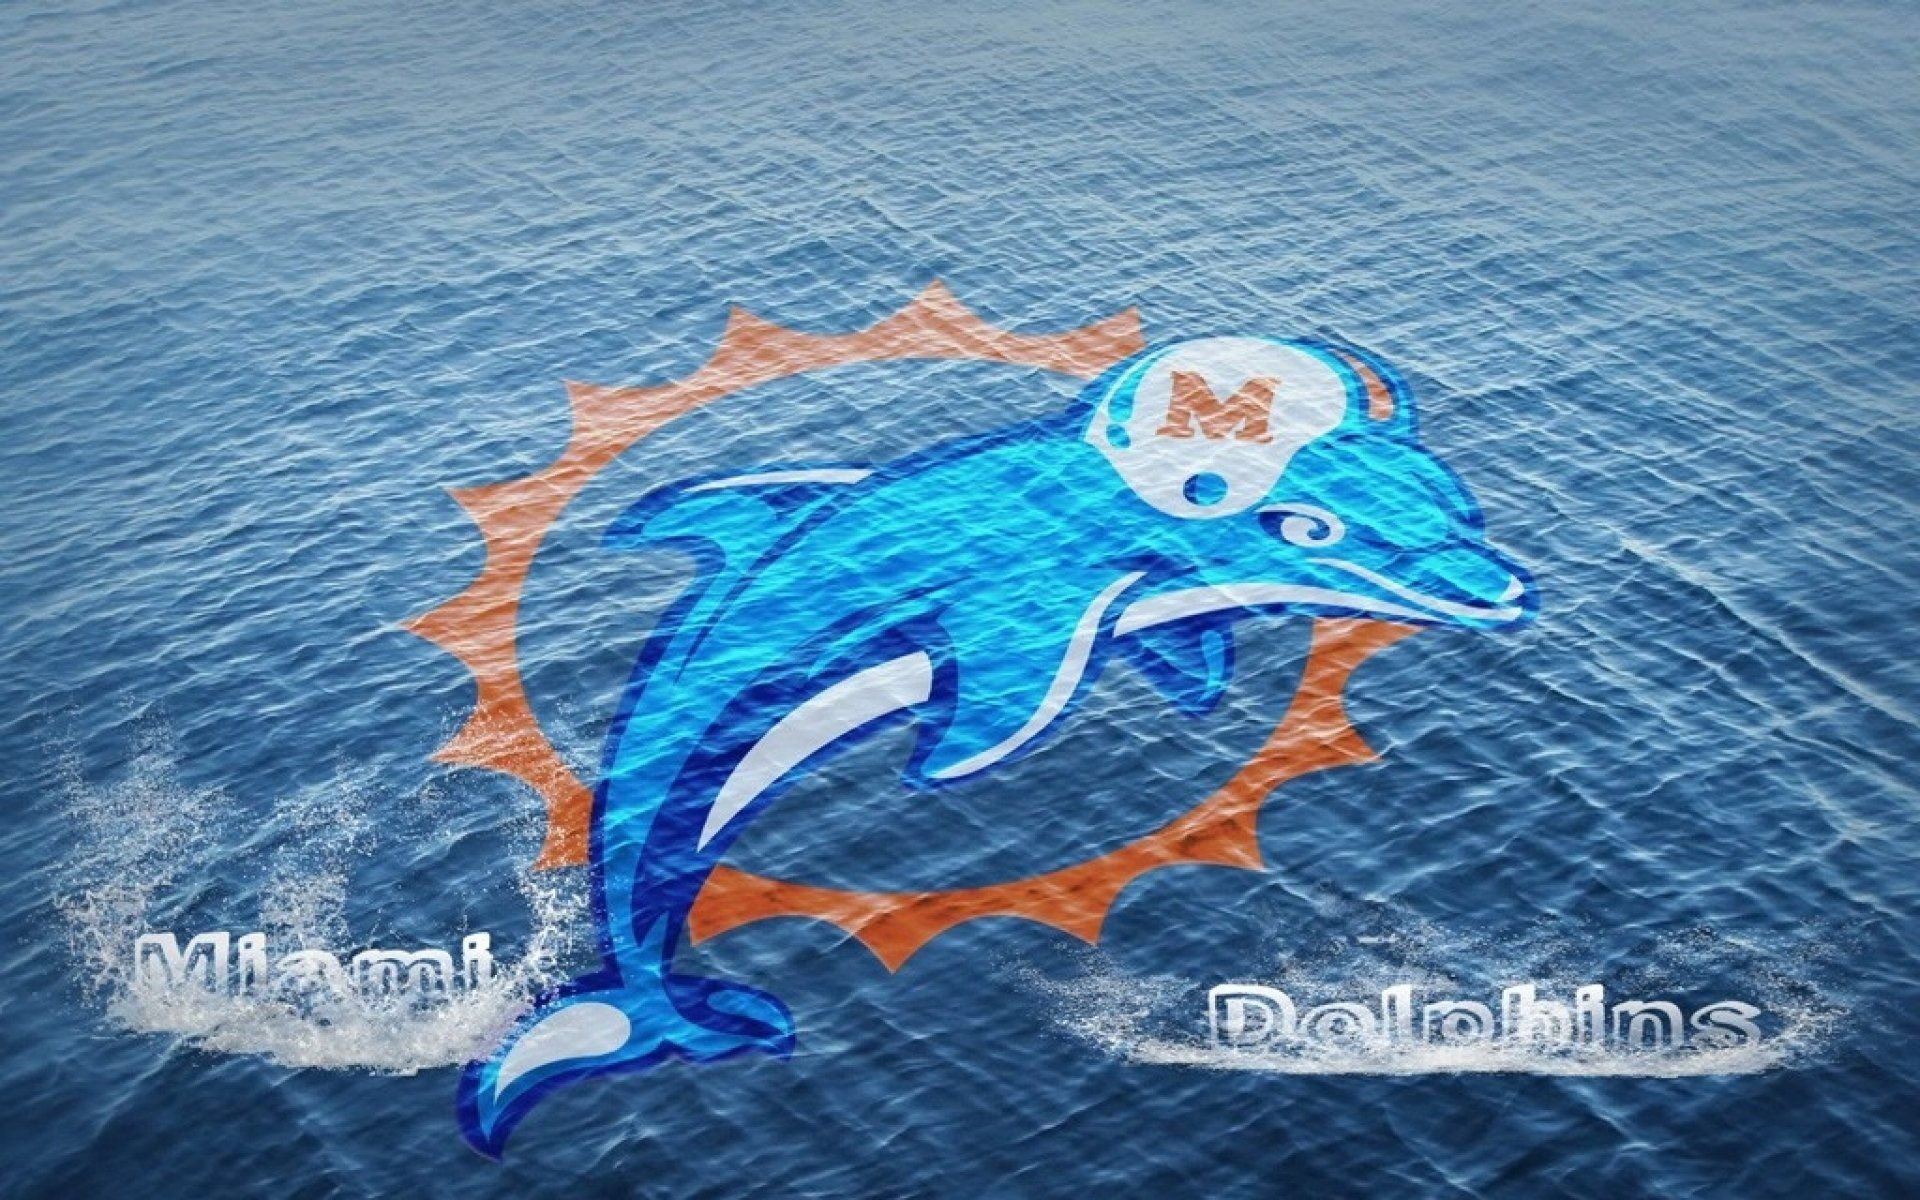 2000x1499 Fullsize Of Rummy Miami Dolphin Wallpaper Page Dolphins Hd